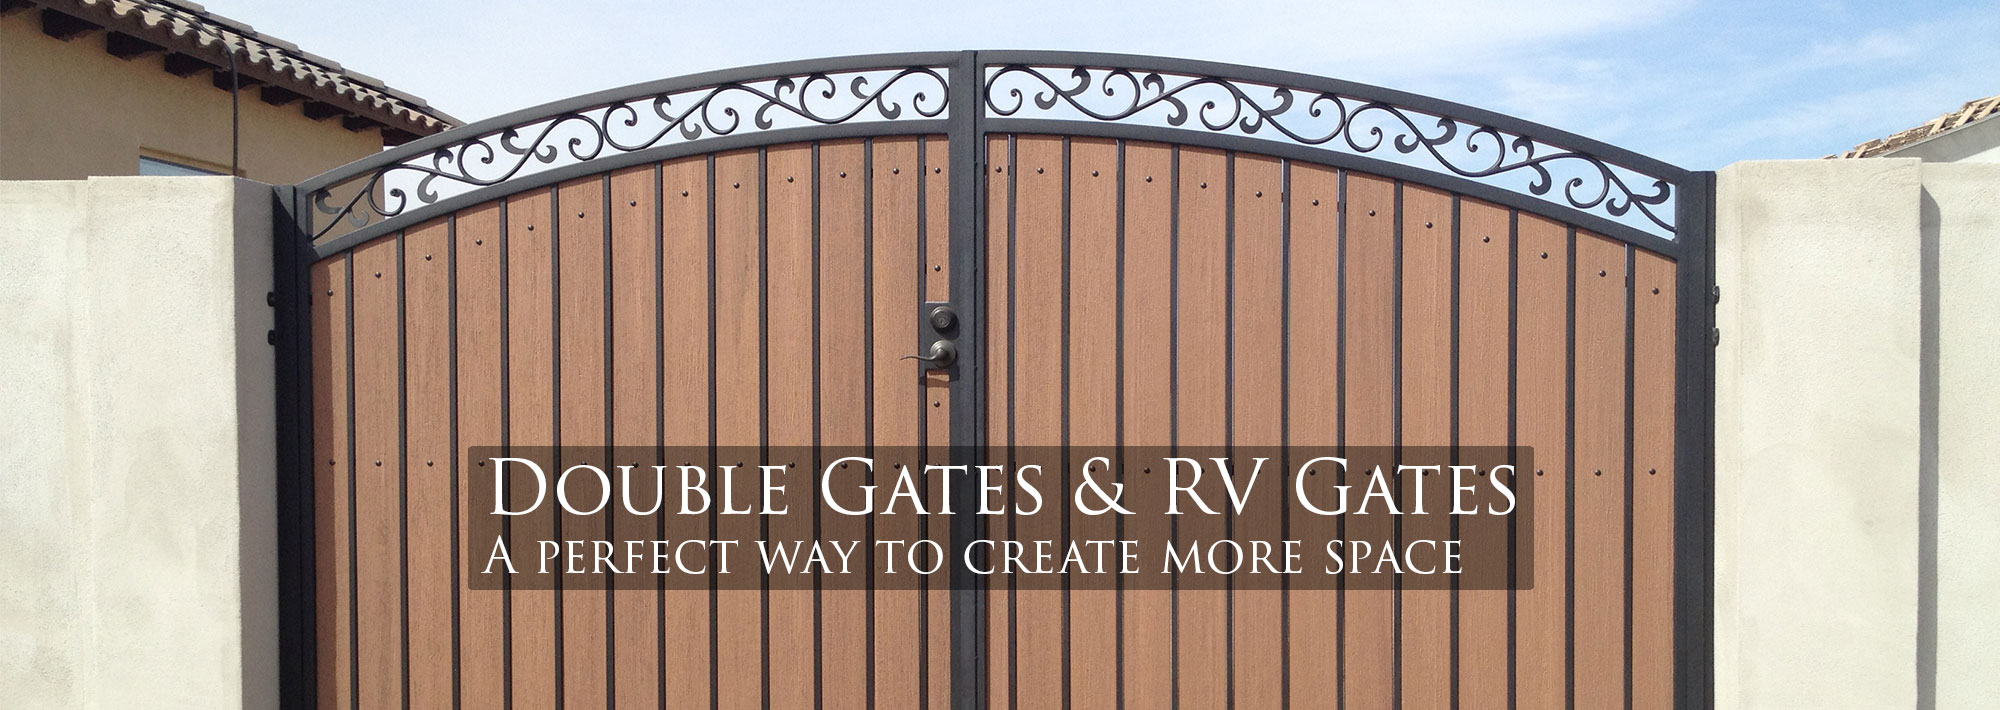 Stunning Home Iron Gate Design Contemporary Interior Design